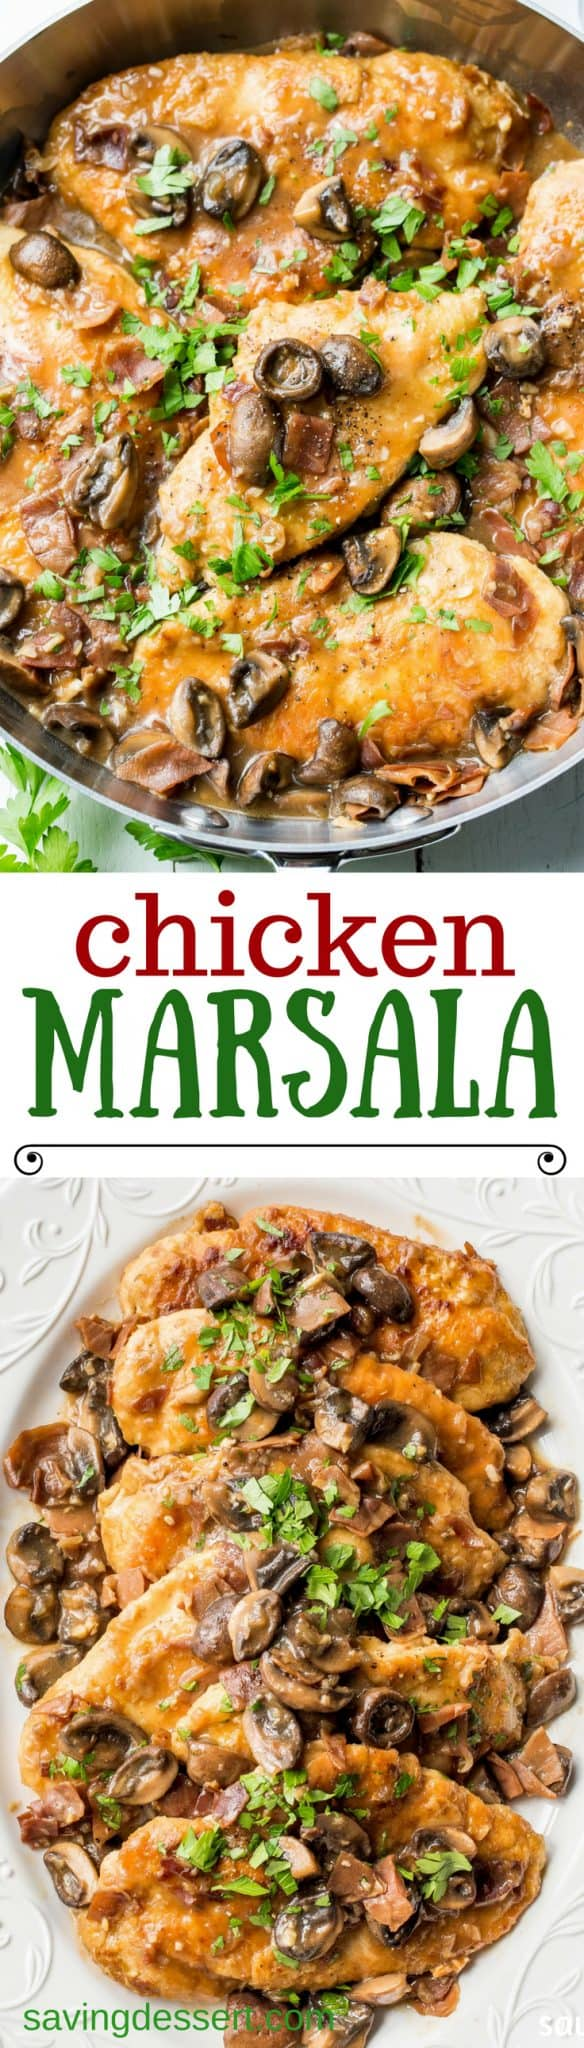 Classic Chicken Marsala ~ tender chicken breasts are seasoned and sautéed, then simmered in a Marsala wine sauce with shallots, prosciutto, and plenty of earthy mushrooms. Your guests never have to know how easy this is to make! savingdessert.com #chickenmarsala #chickendish #chicken #chickenmushrooms #marsala #savingroomfordessert